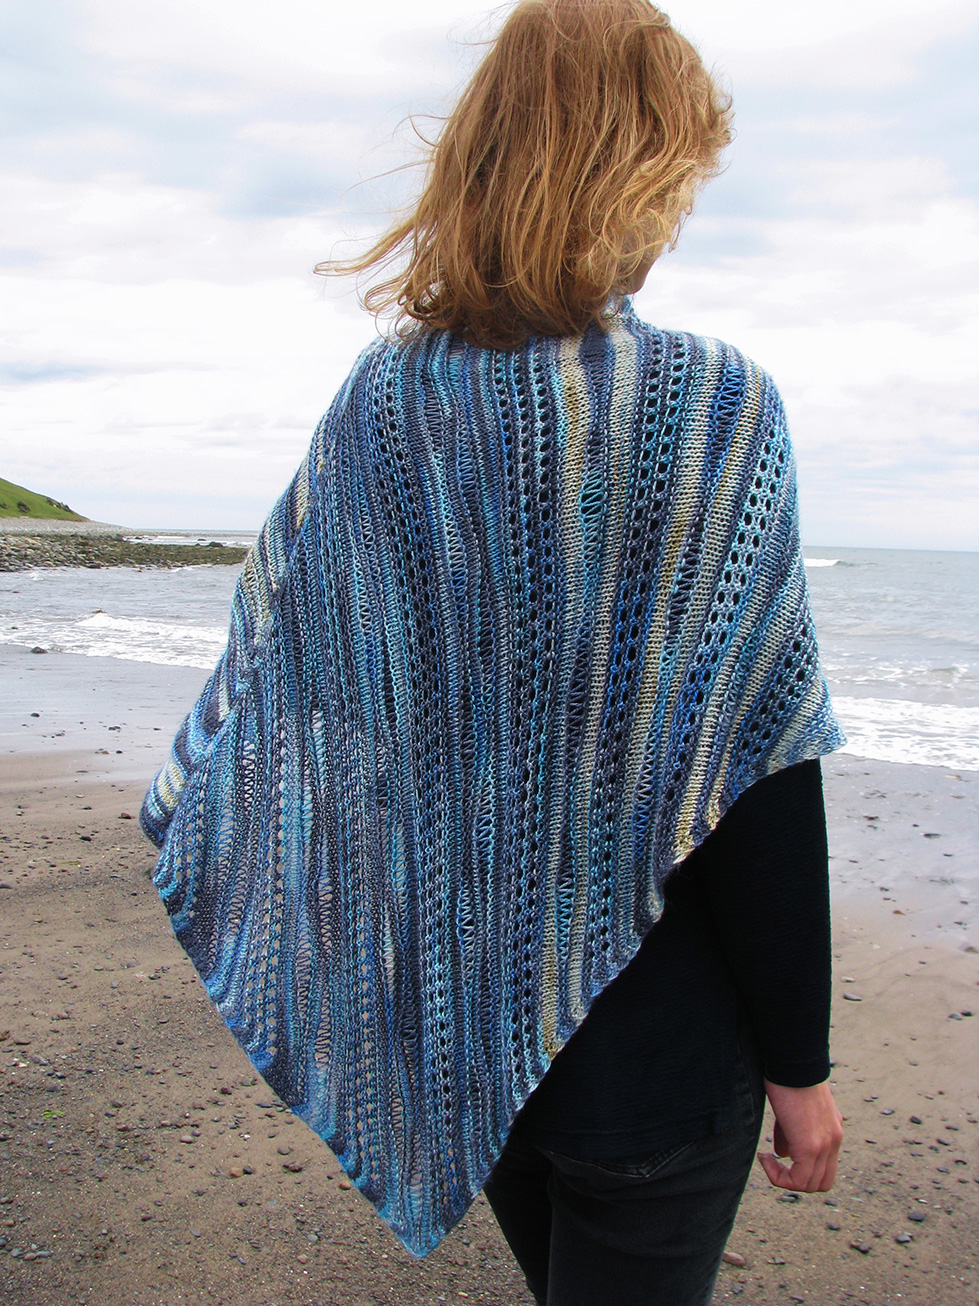 Sea Storm - ILGA LEJA - Classic Knitting Patterns for the